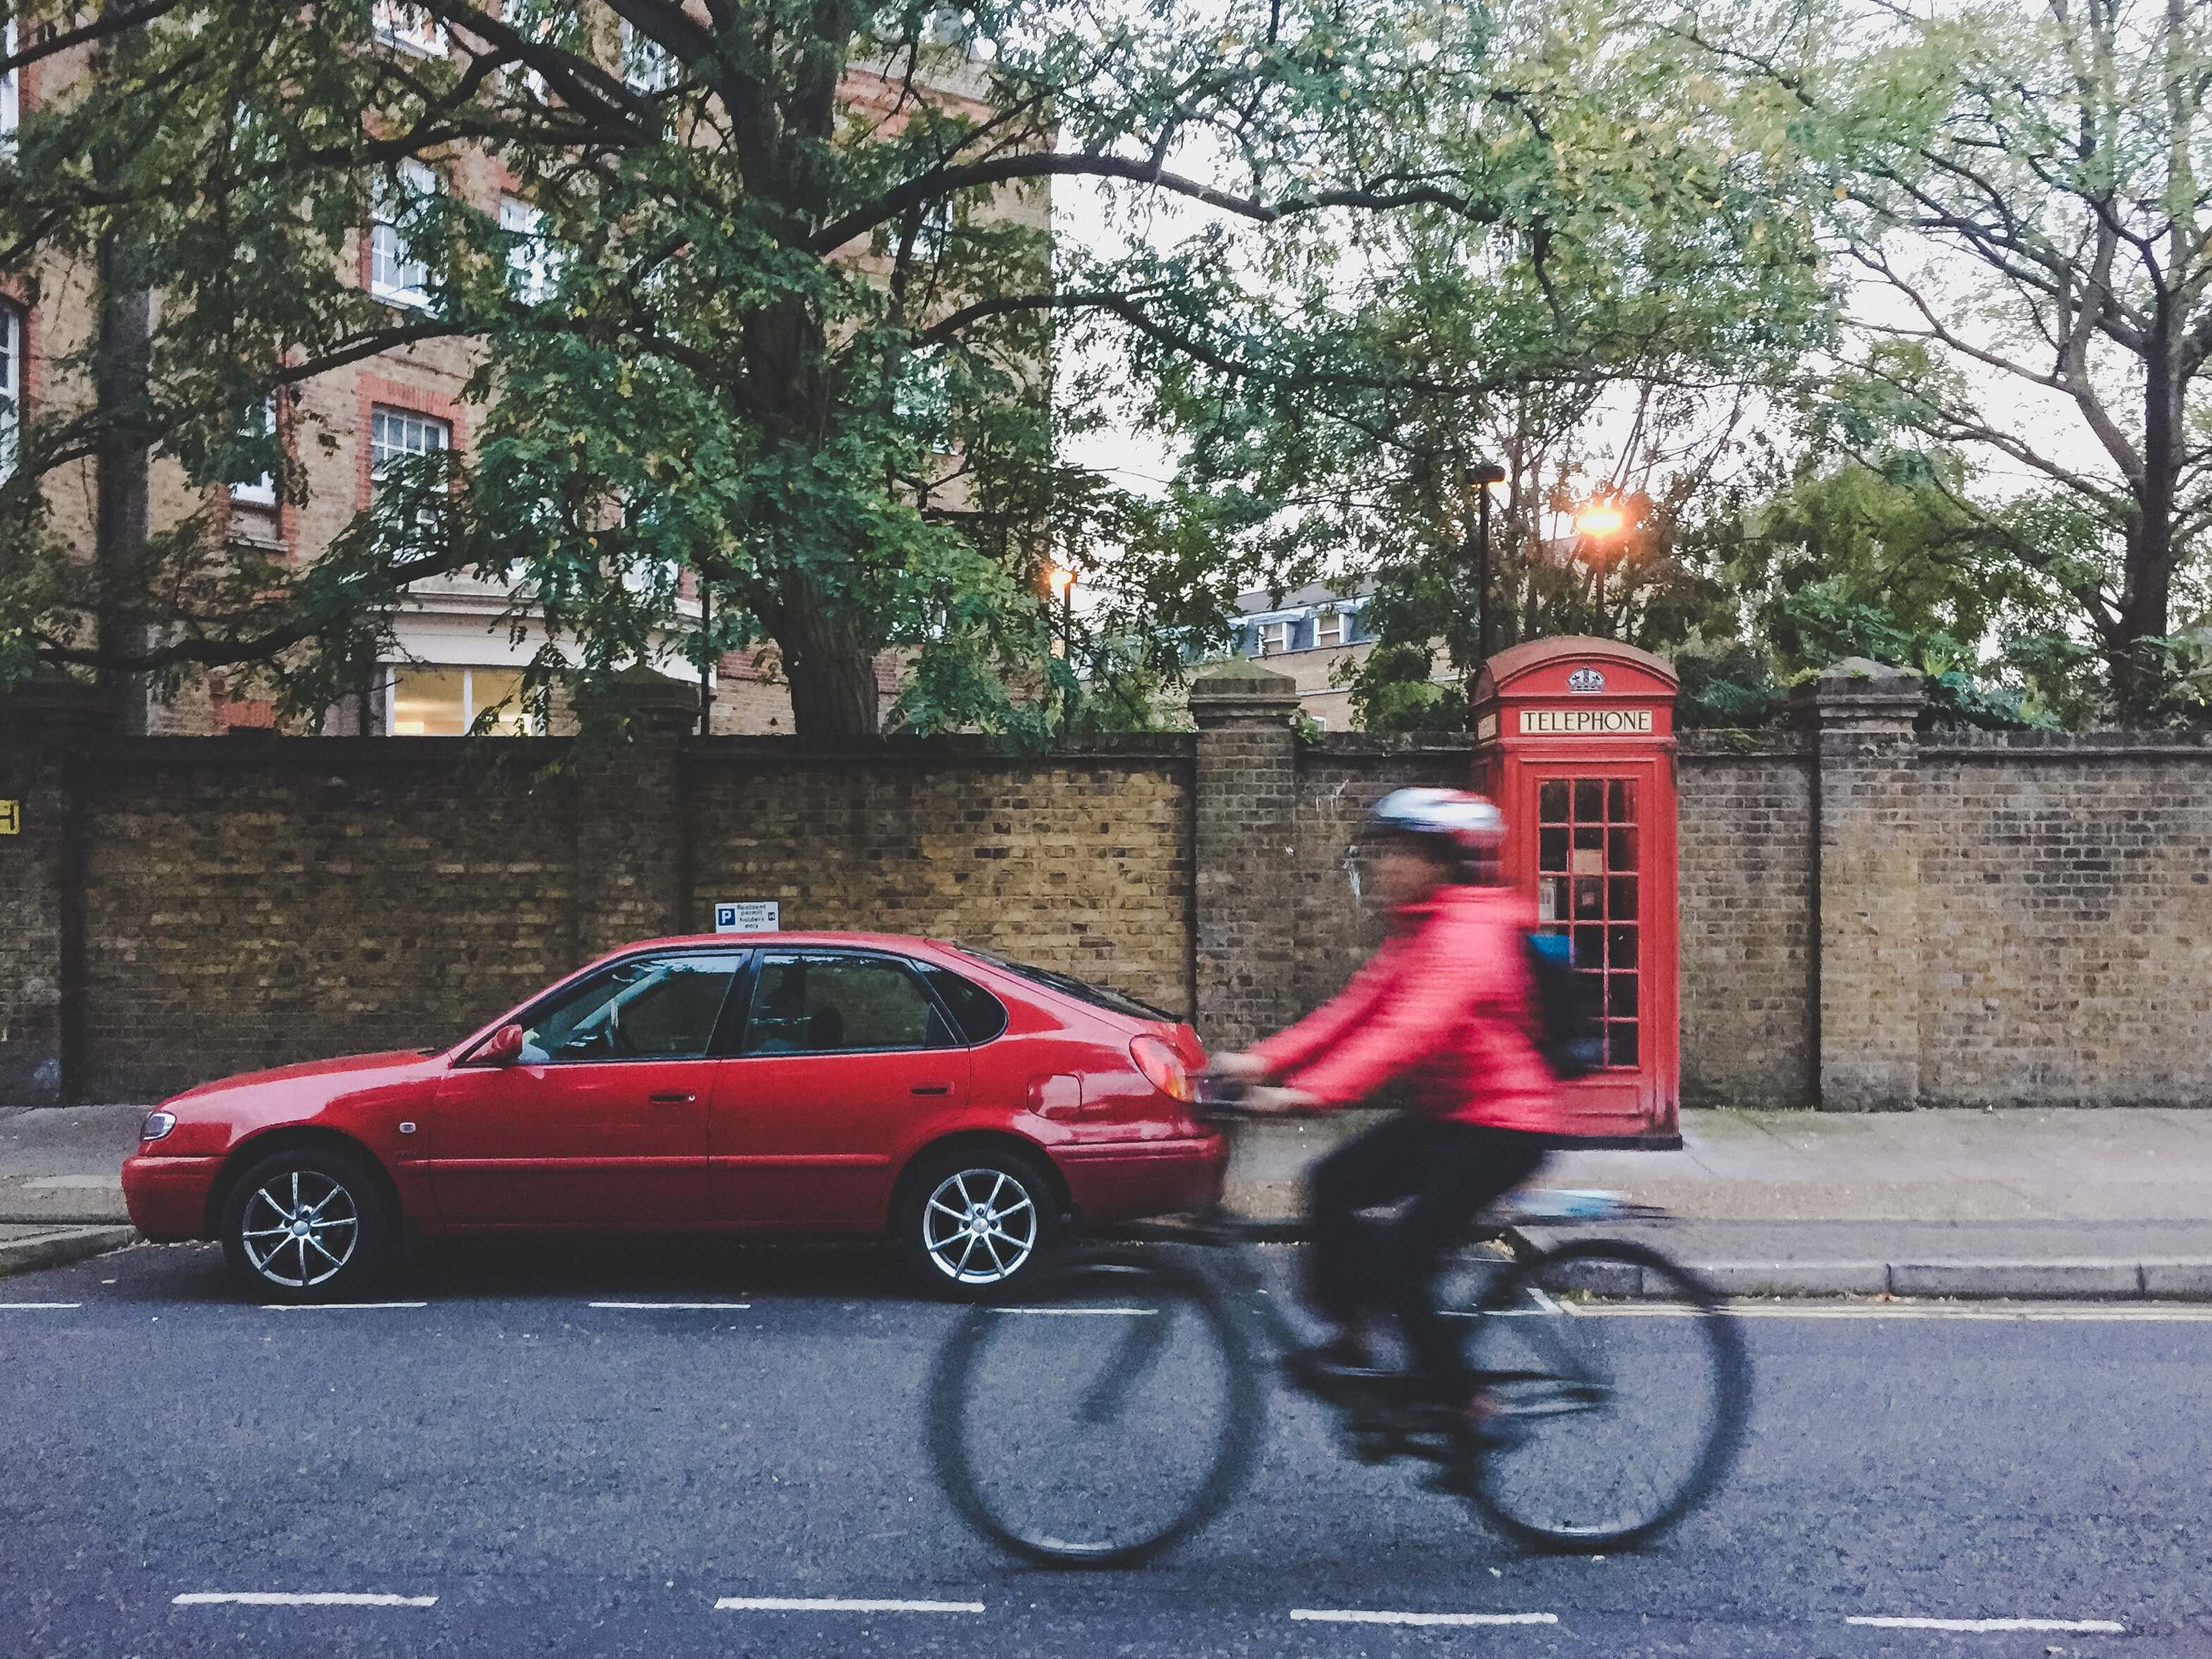 Trees, bike, car and red phone booth on London street